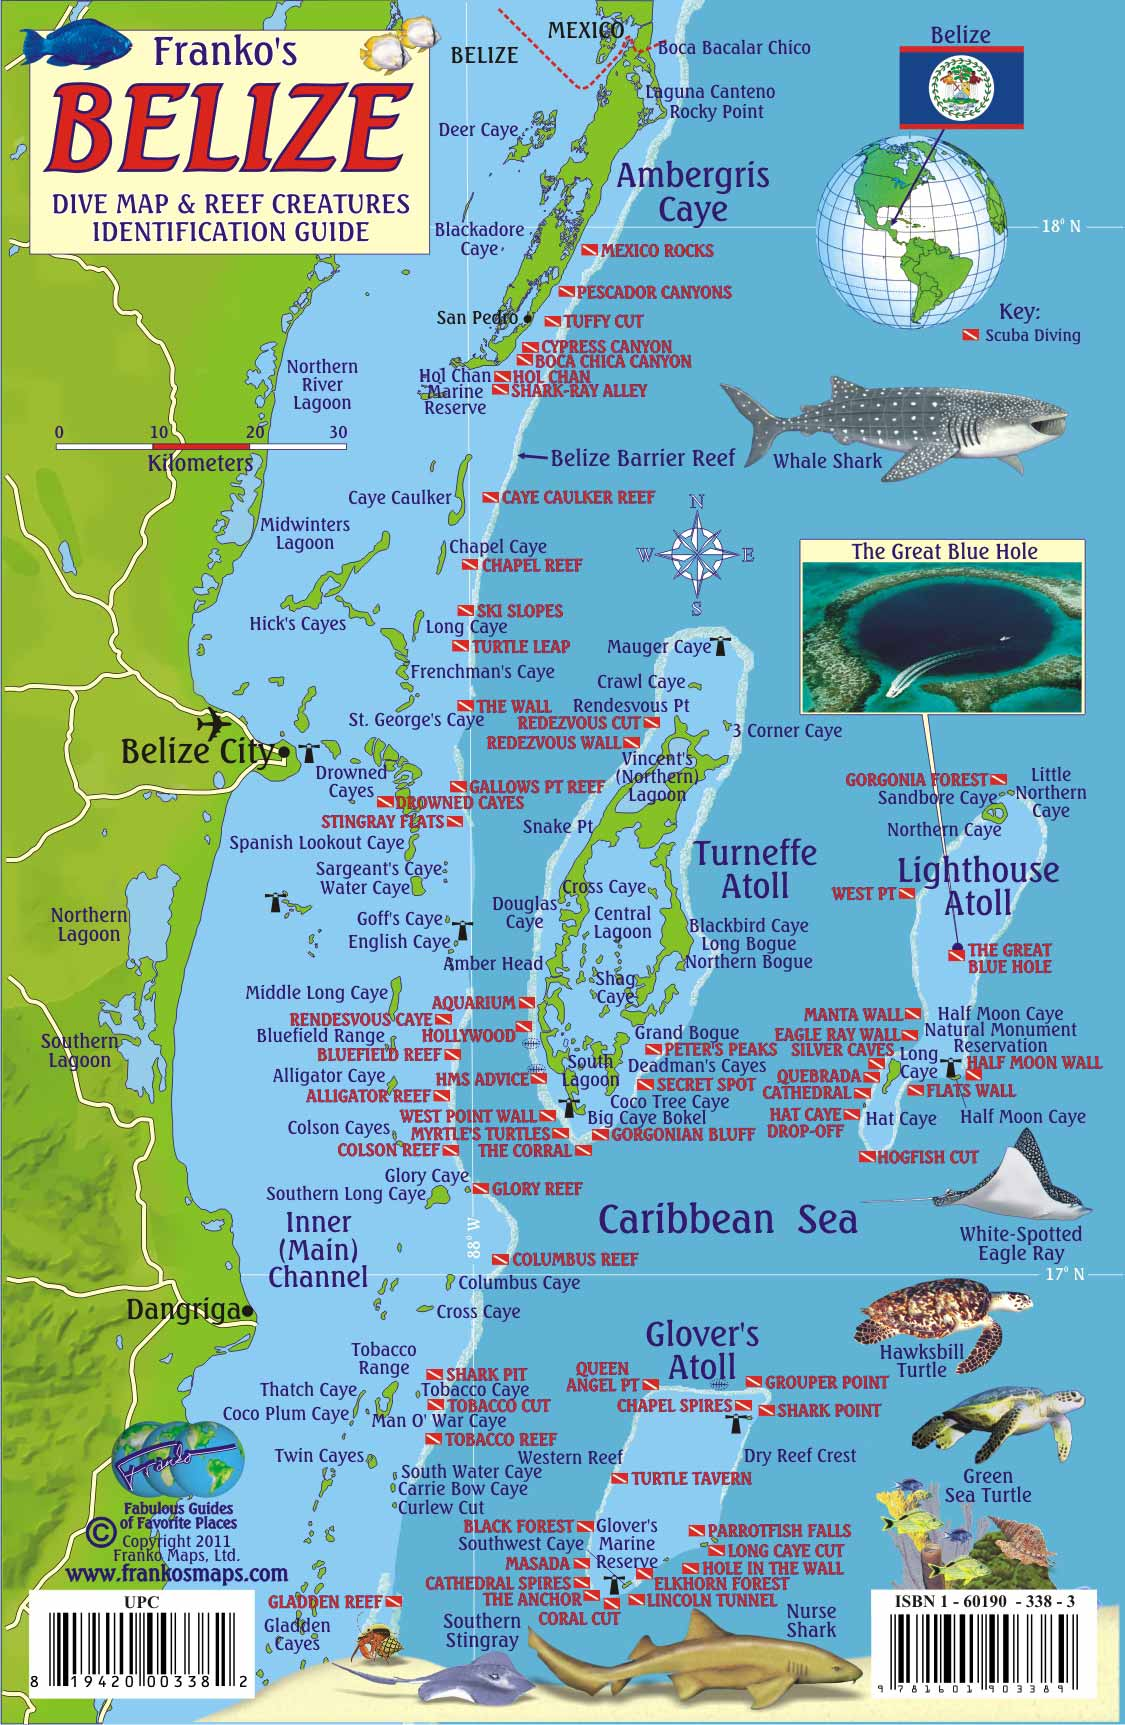 Belize Scuba Diving Map And Reef Creature Identification Guide Ambergris Caye San Pedro